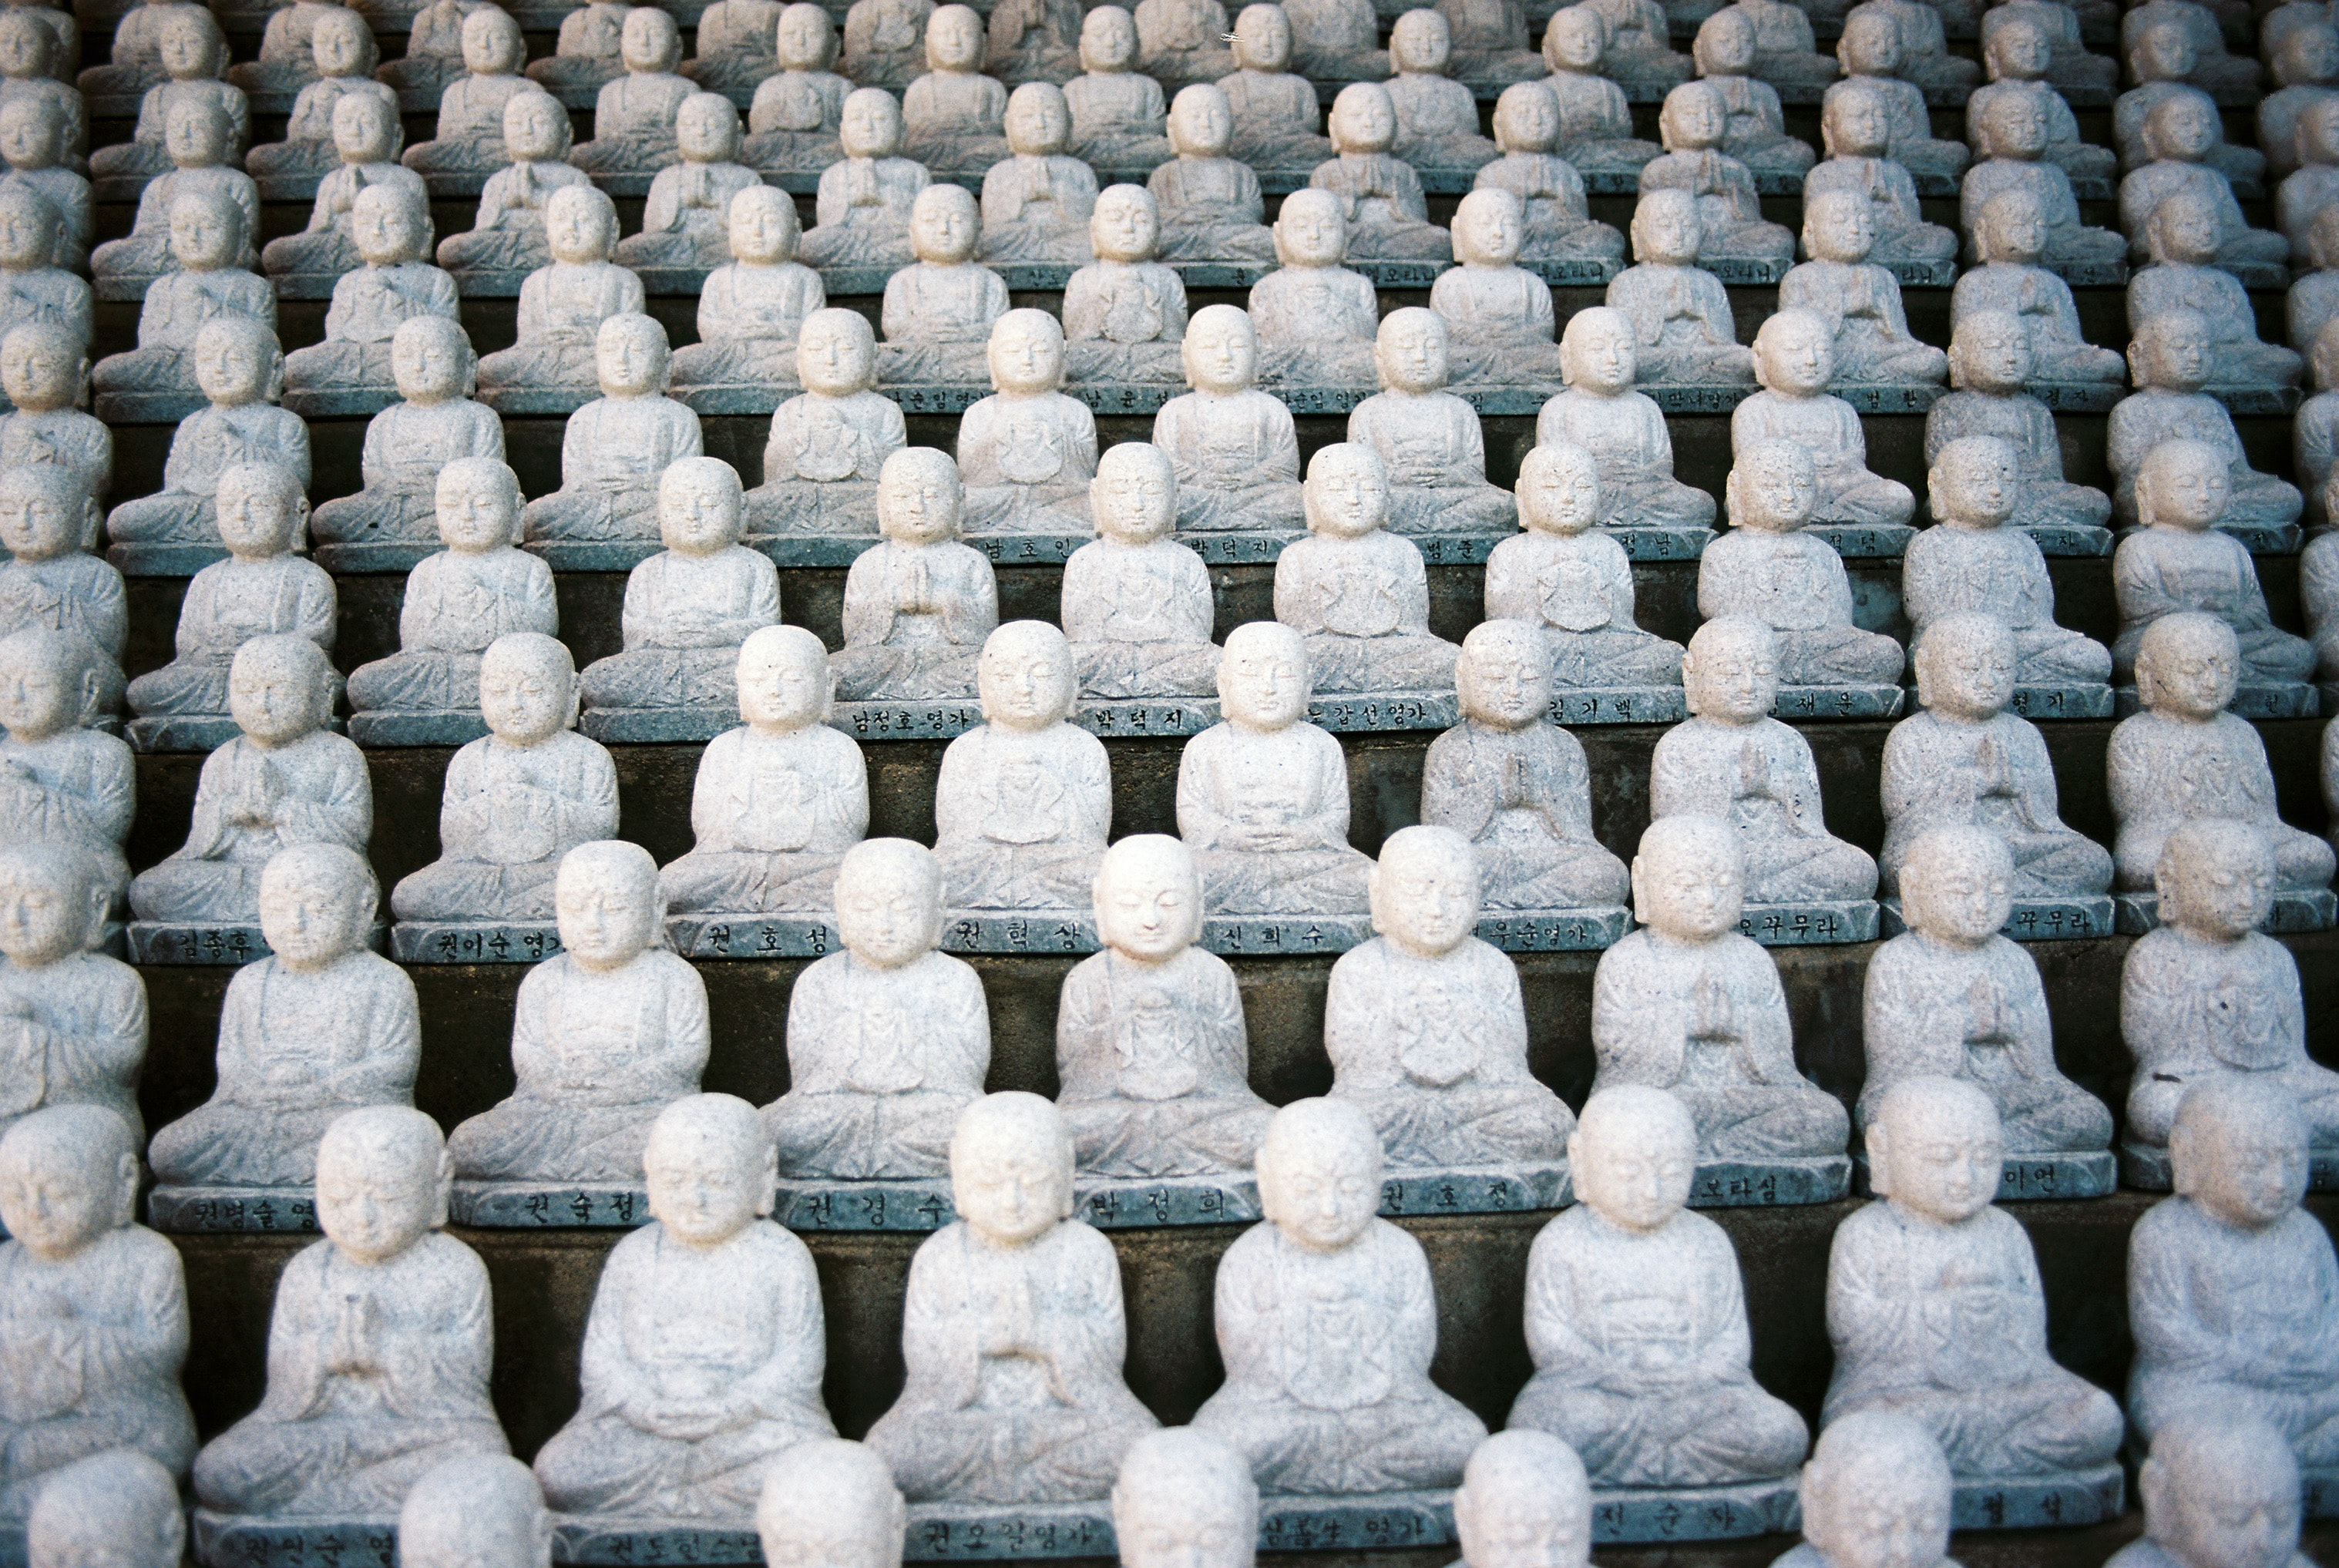 Lines of statues at a buddha temple